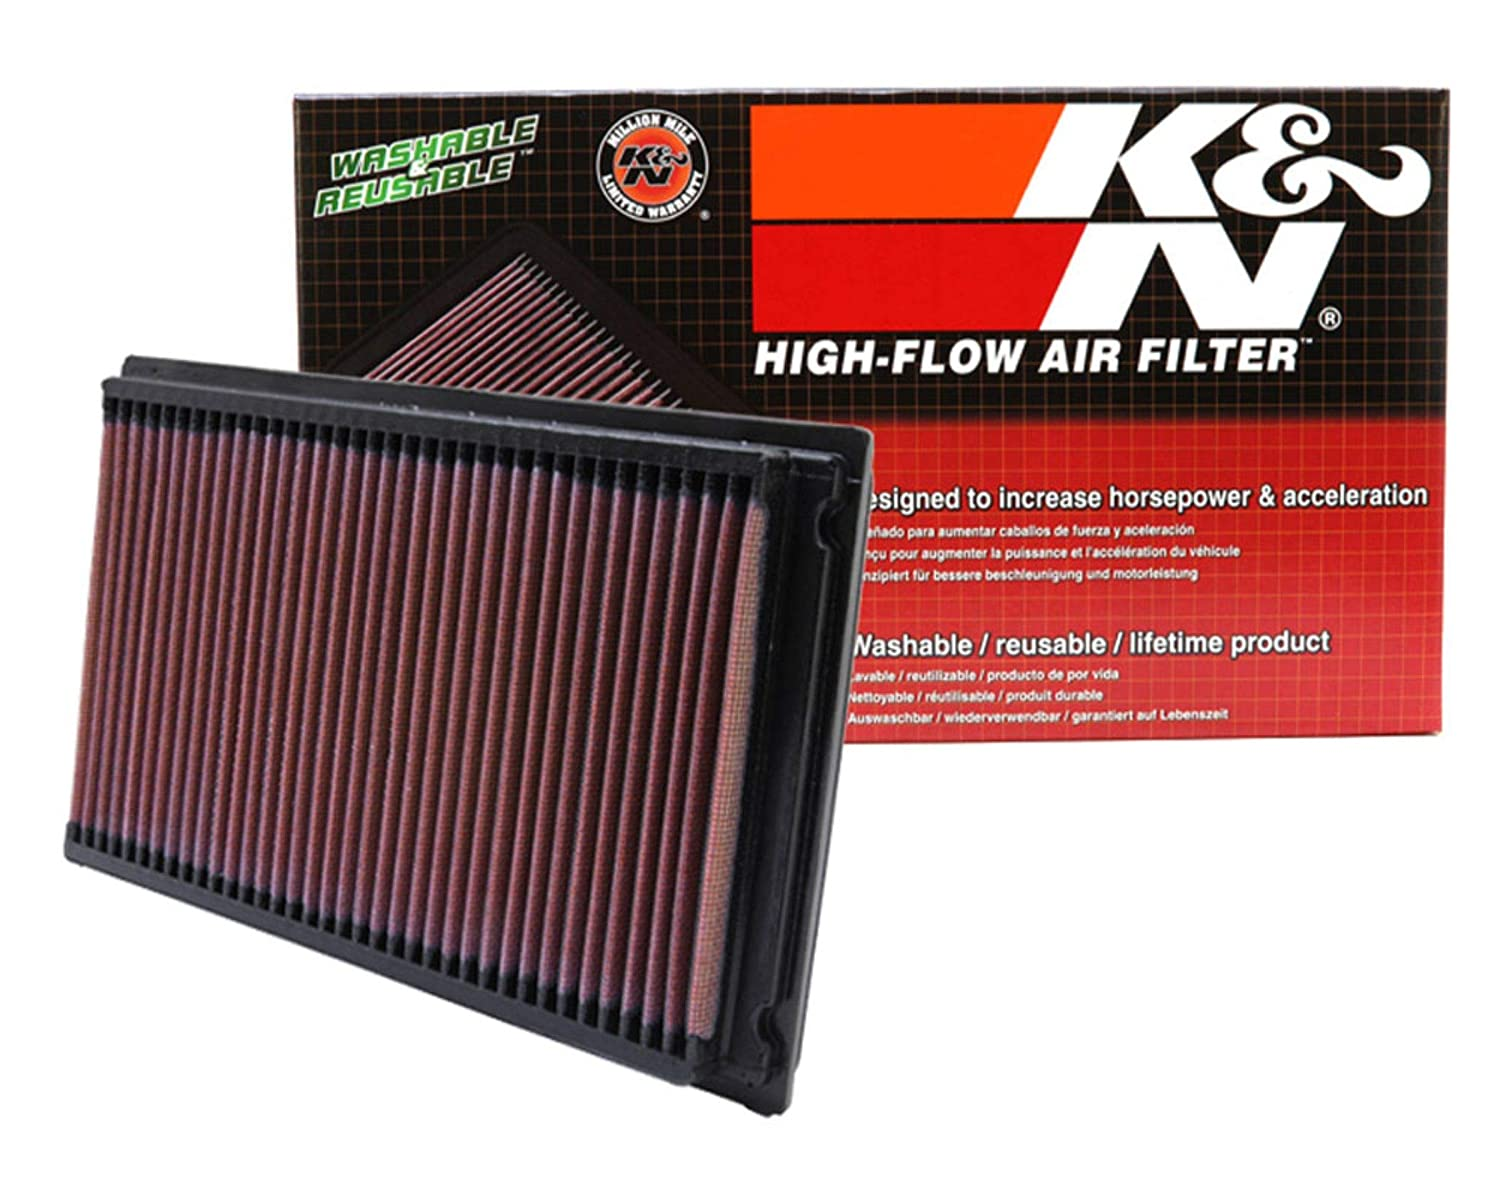 washable and reusable: 1981-2019 Nissan//Infiniti//Renault L4//V6 Maxima, Murano, Pathfinder, Altima, Elgrand, Quest, Terena, X-Trail, QX60, FX35 33-2031-2 K/&N engine air filter